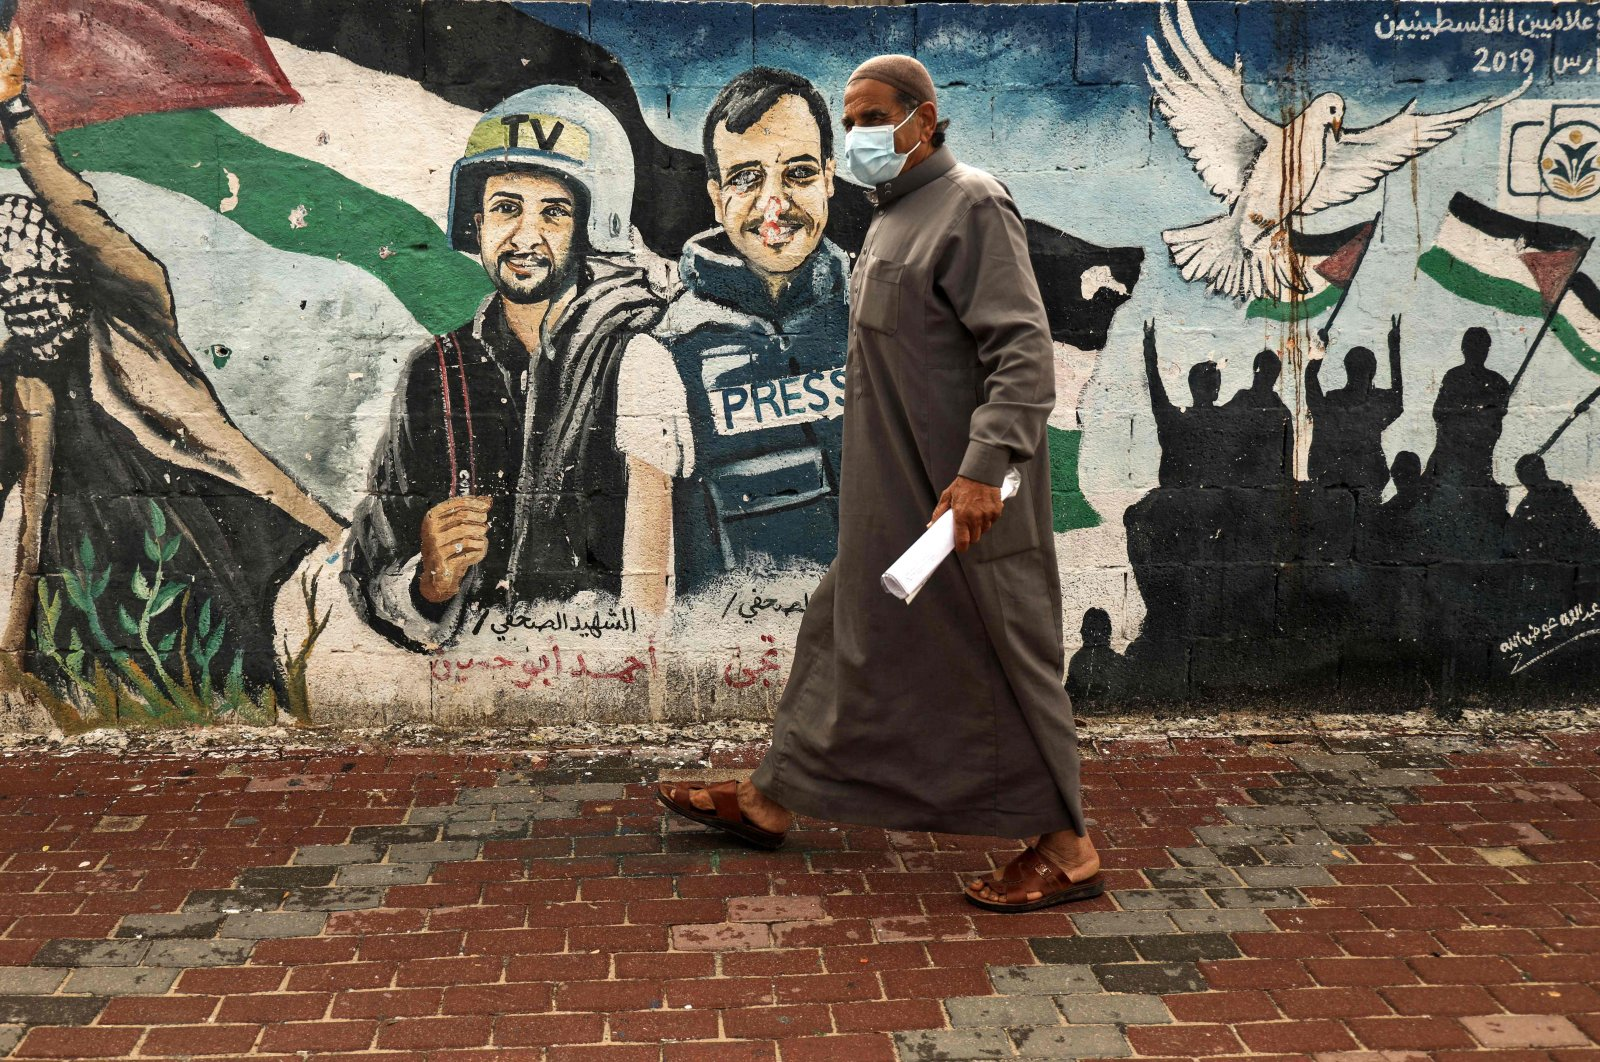 A Palestinian man wearing a face mask walks past a mural of journalists killed in 2014 between Hamas and Israel, in the Gaza Strip, March 4, 2021. (AFP Photo)